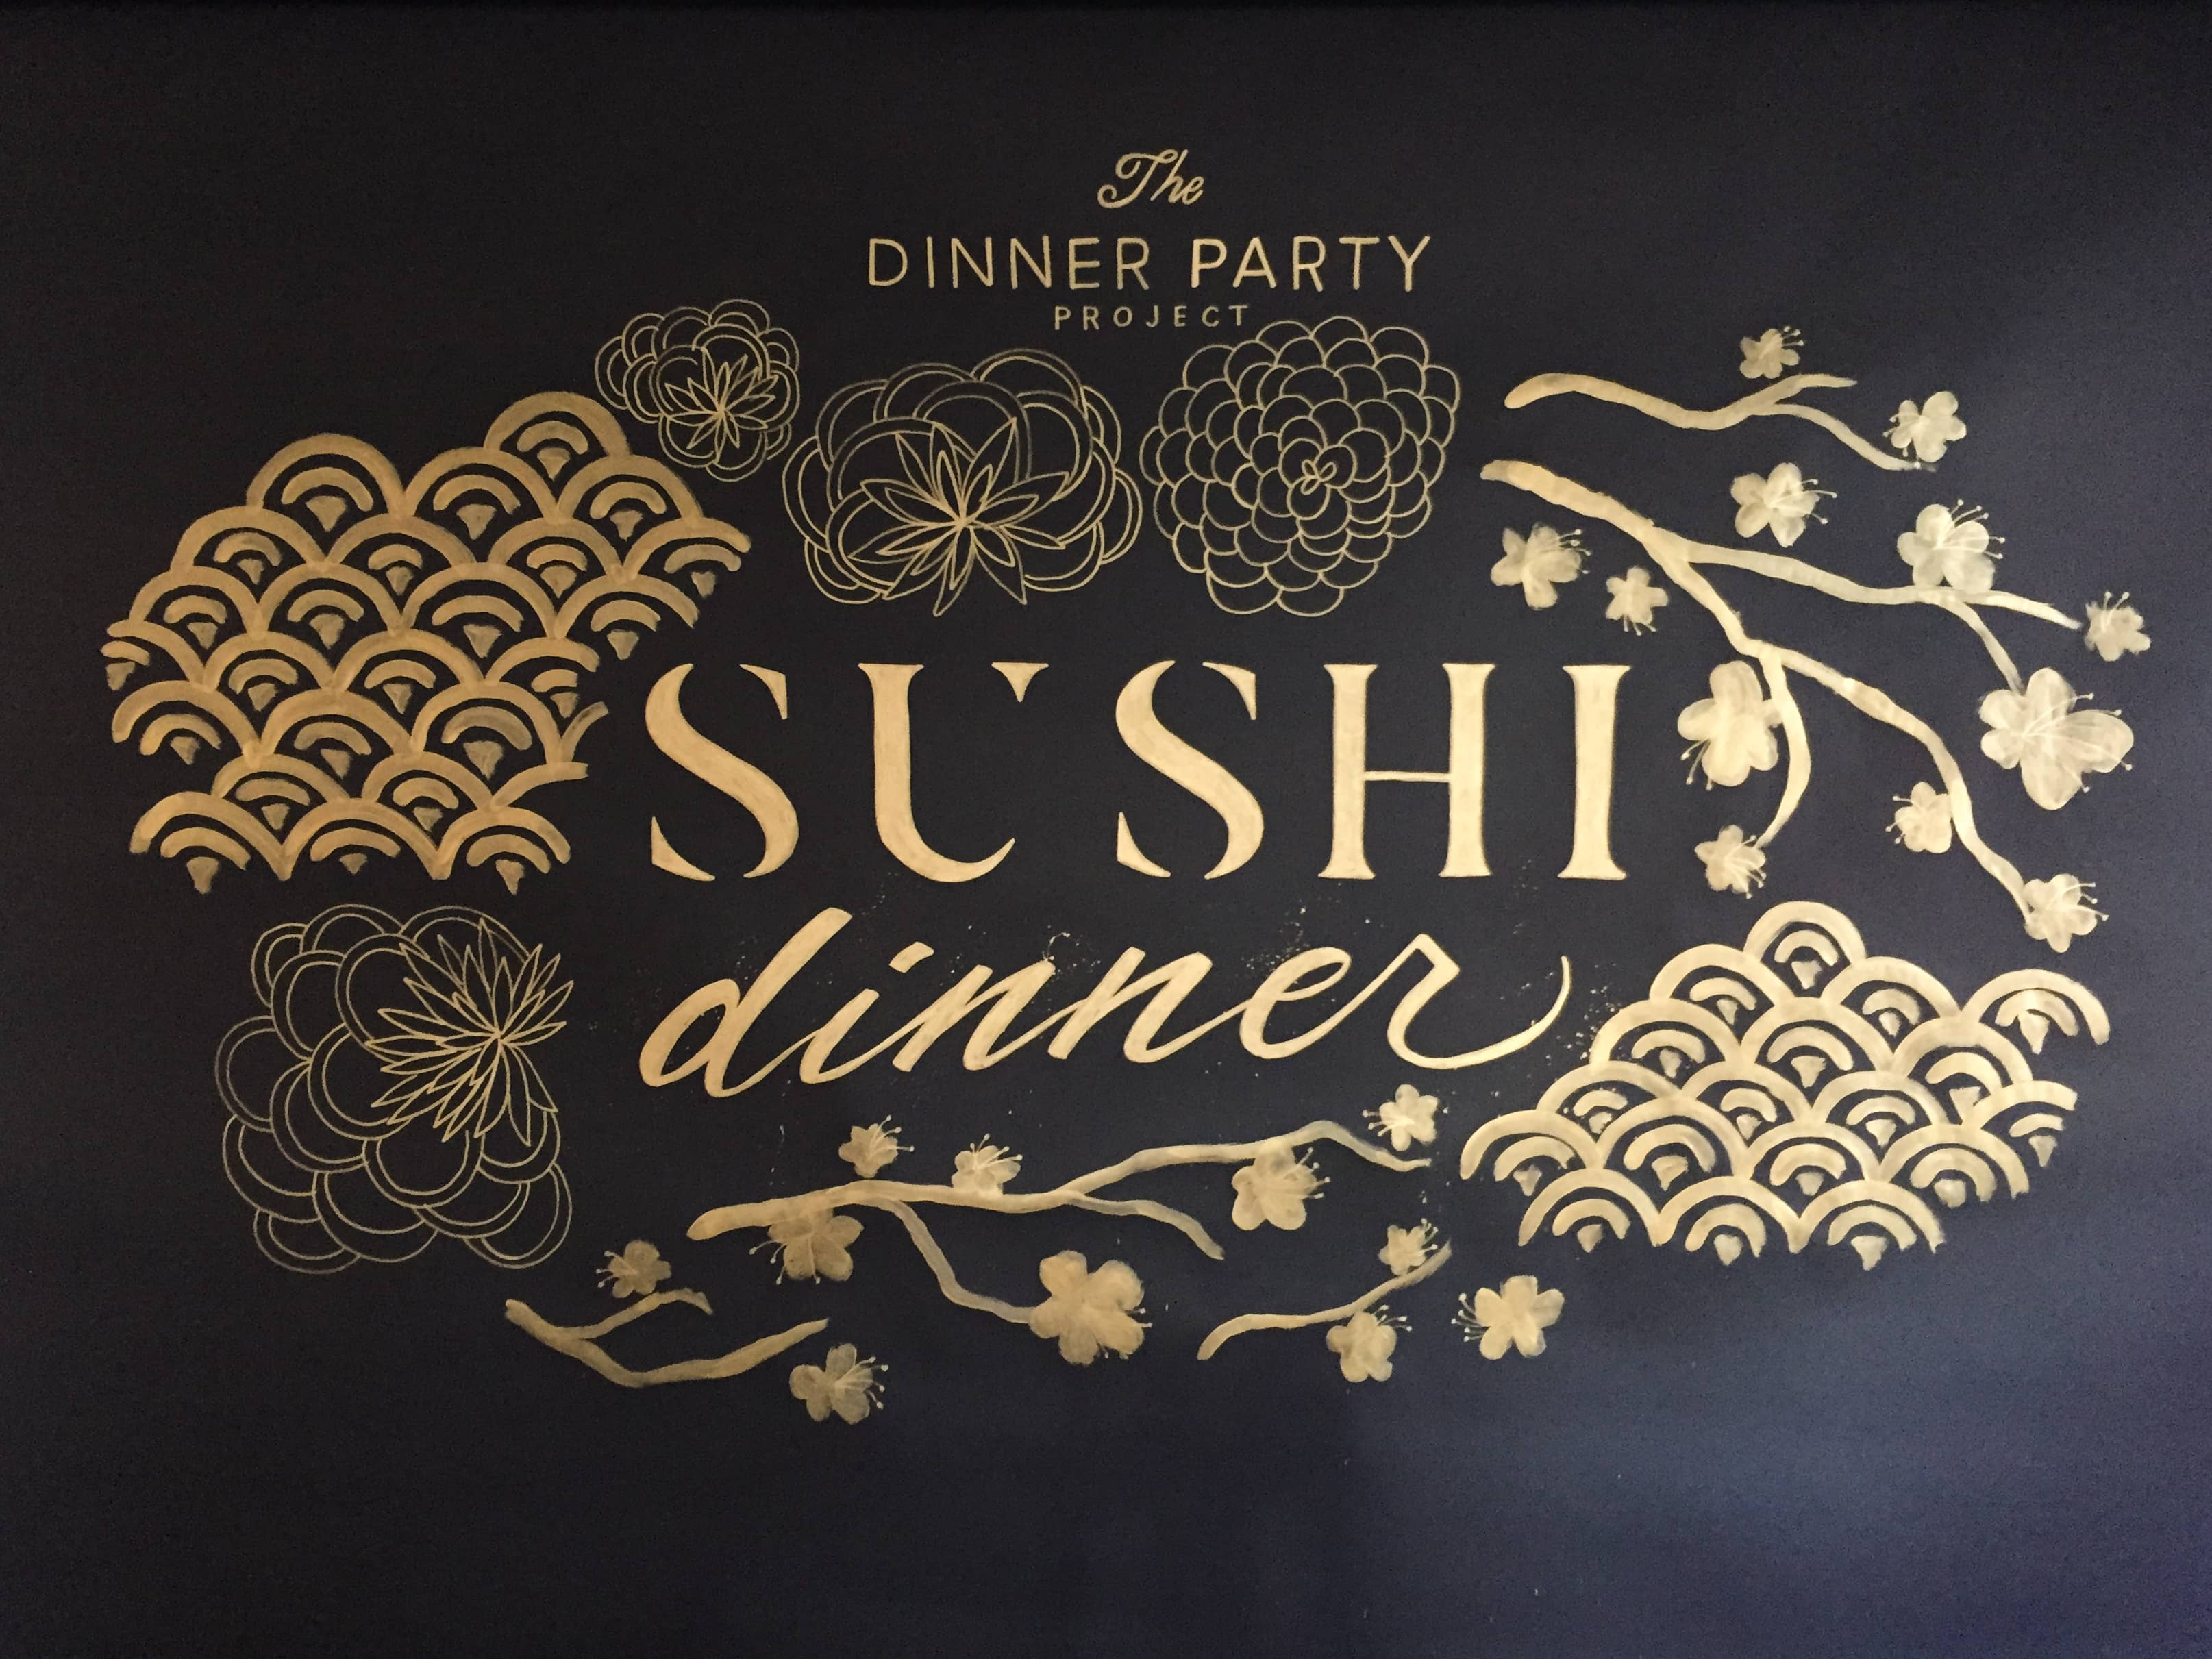 The Dinner Party Project hand lettered backdrop